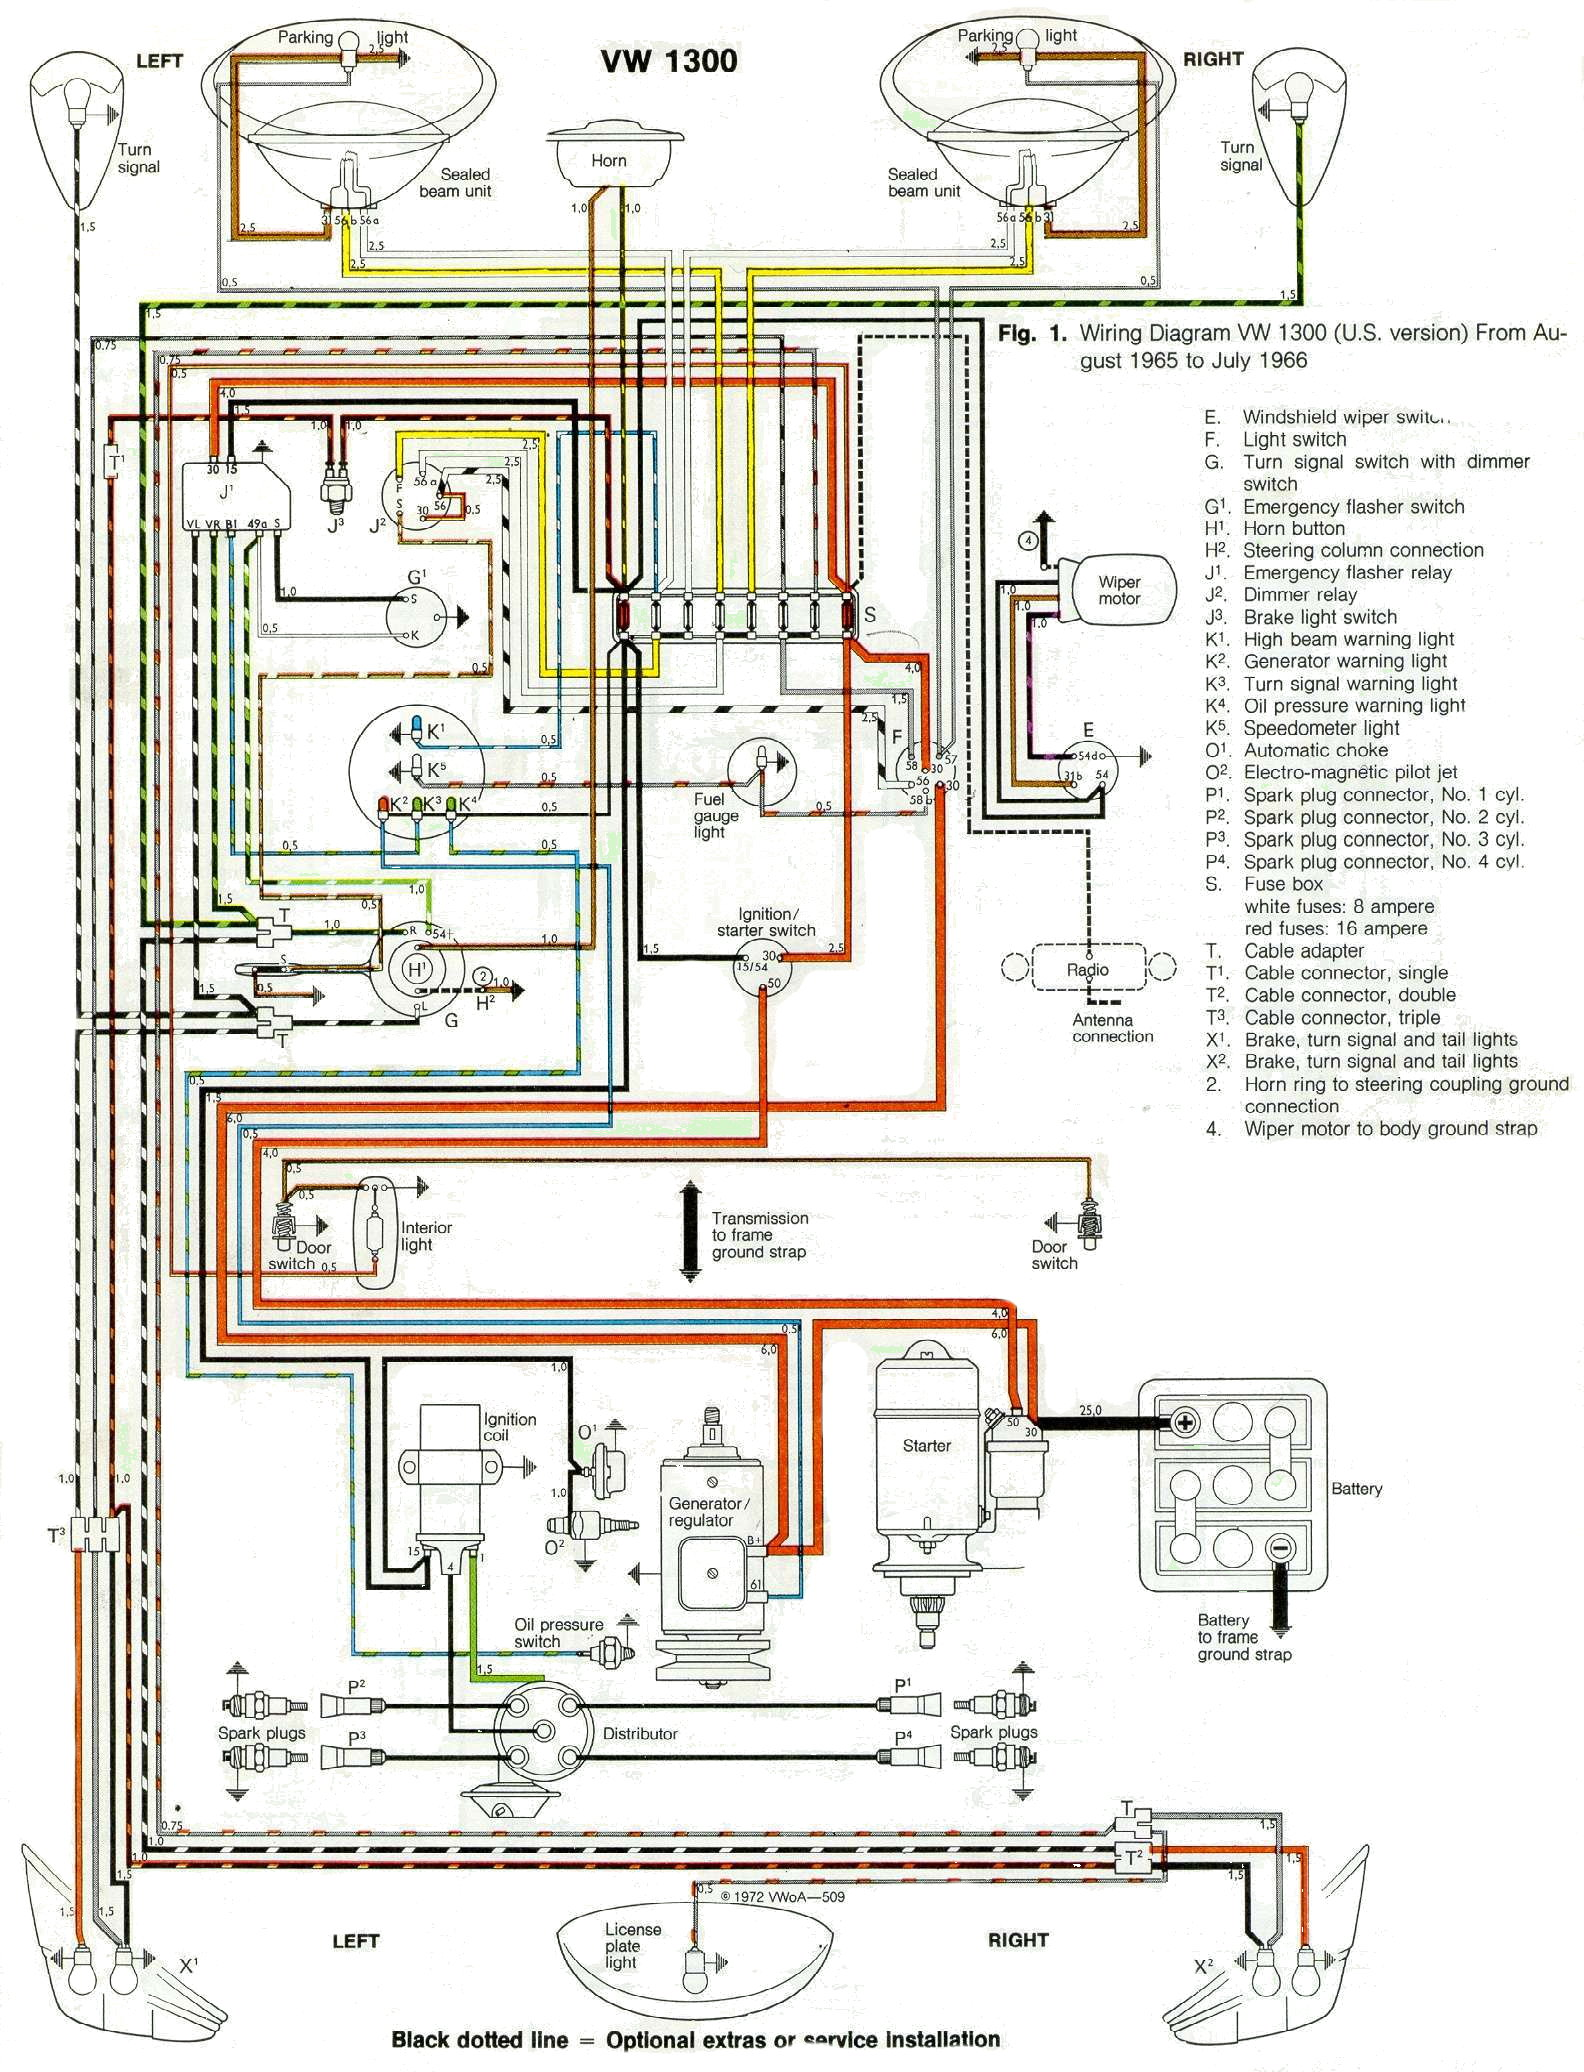 1966 Wiring 1966 wiring diagram 1960 vw bus wiring diagram at fashall.co